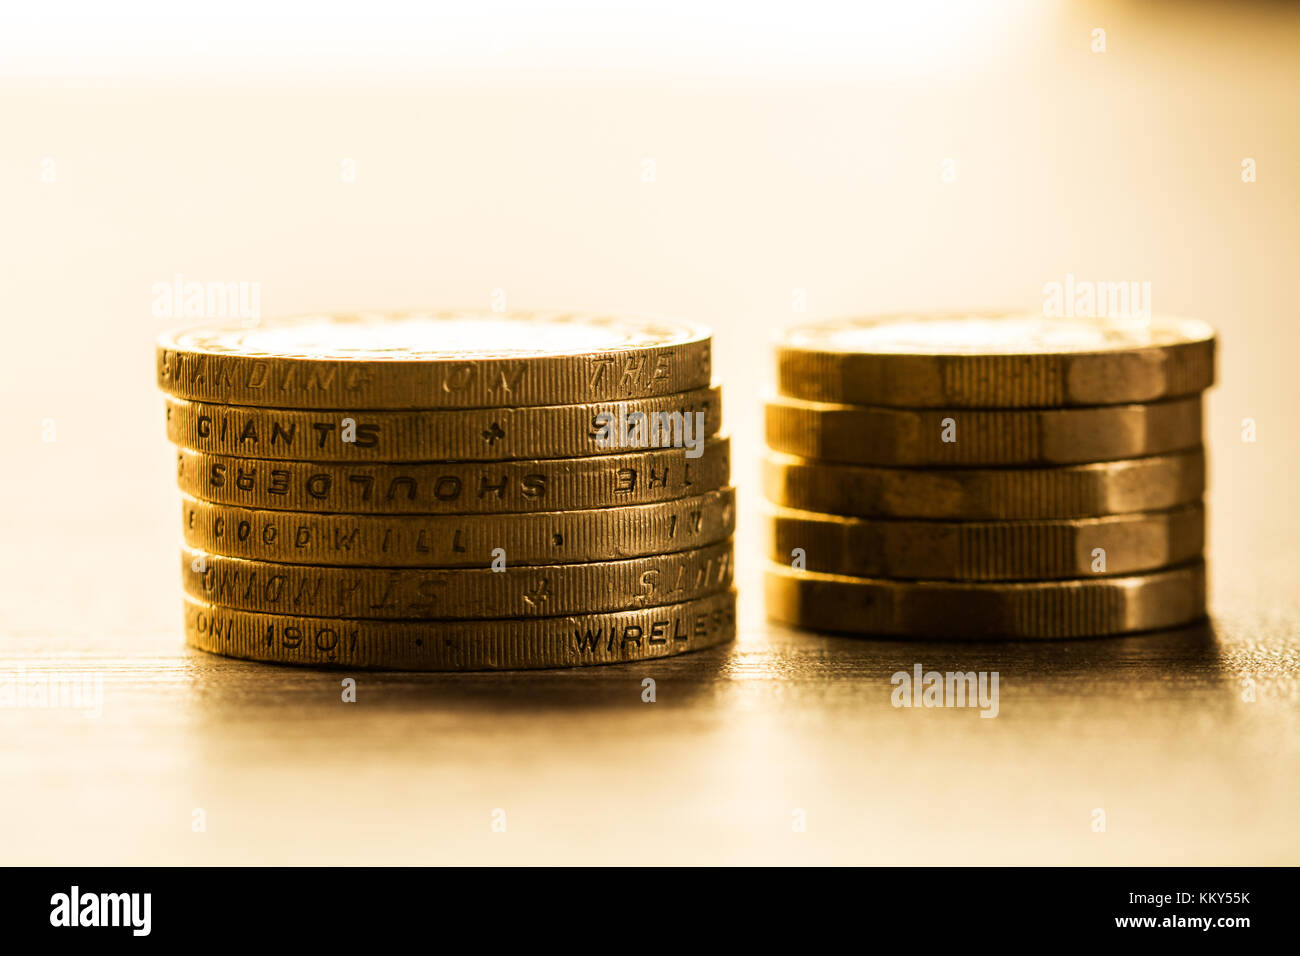 coins, pille of british coins, pound, sparky coins Stock Photo